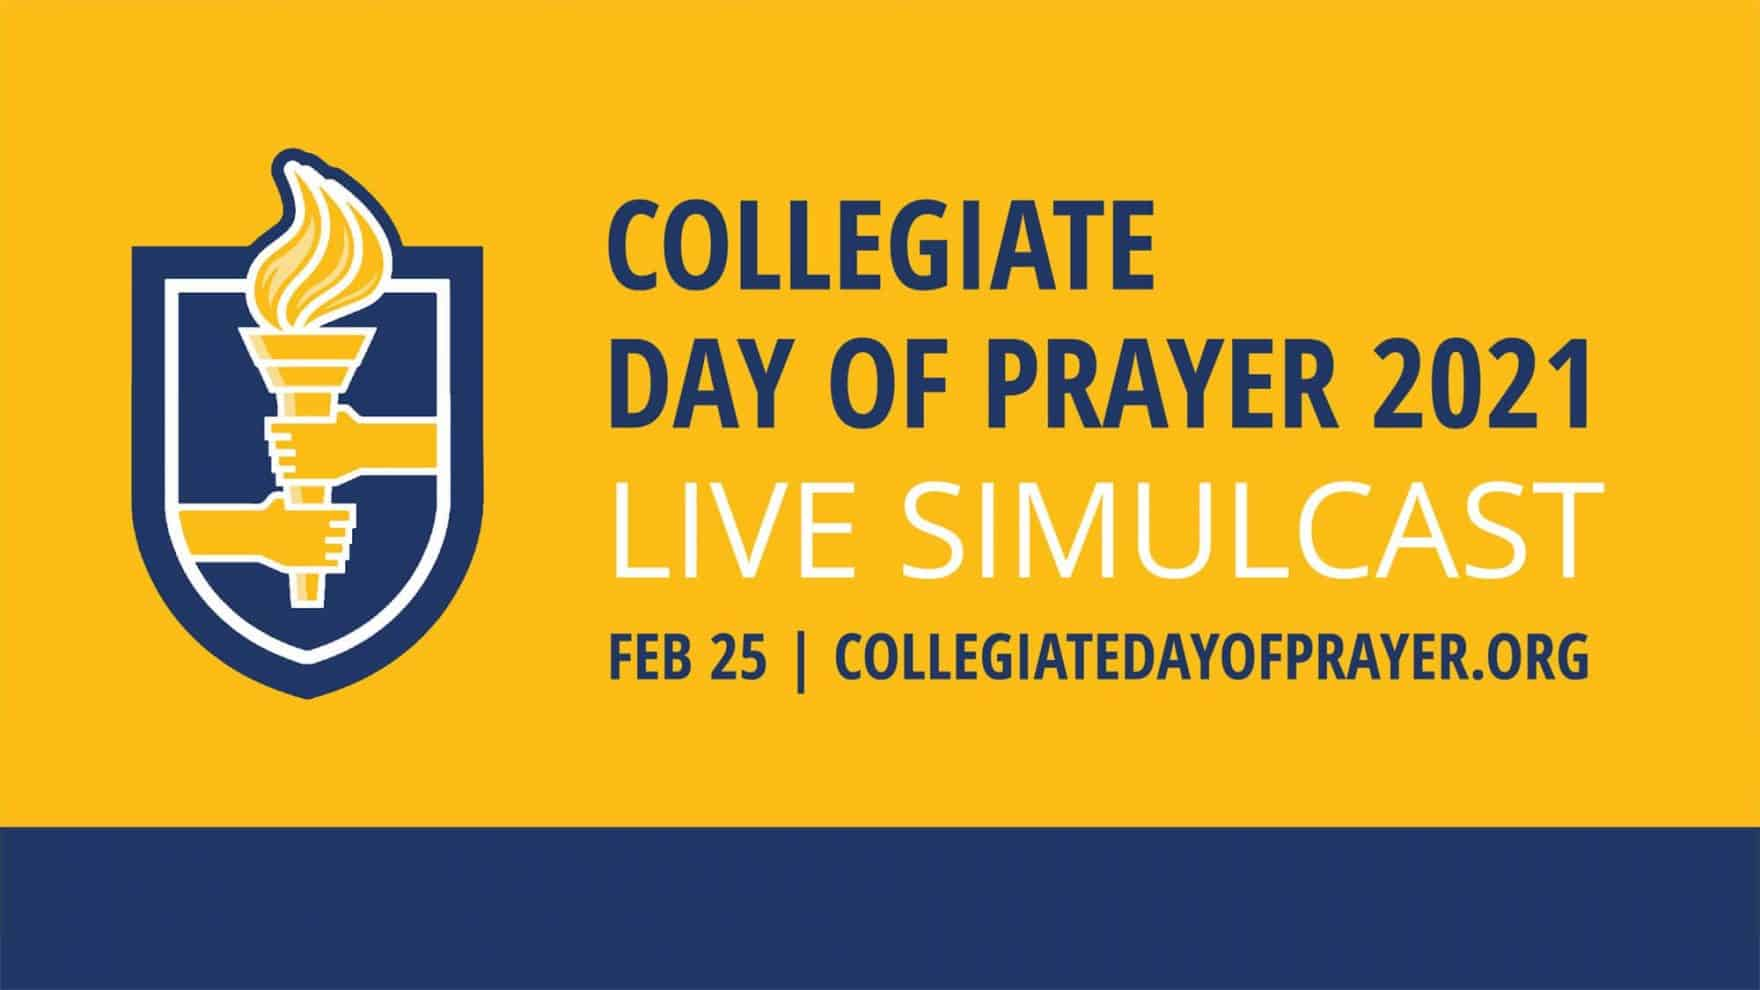 The national Collegiate Day of Prayer will be hosted by Regent, a premier Christian college located in Virginia Beach.